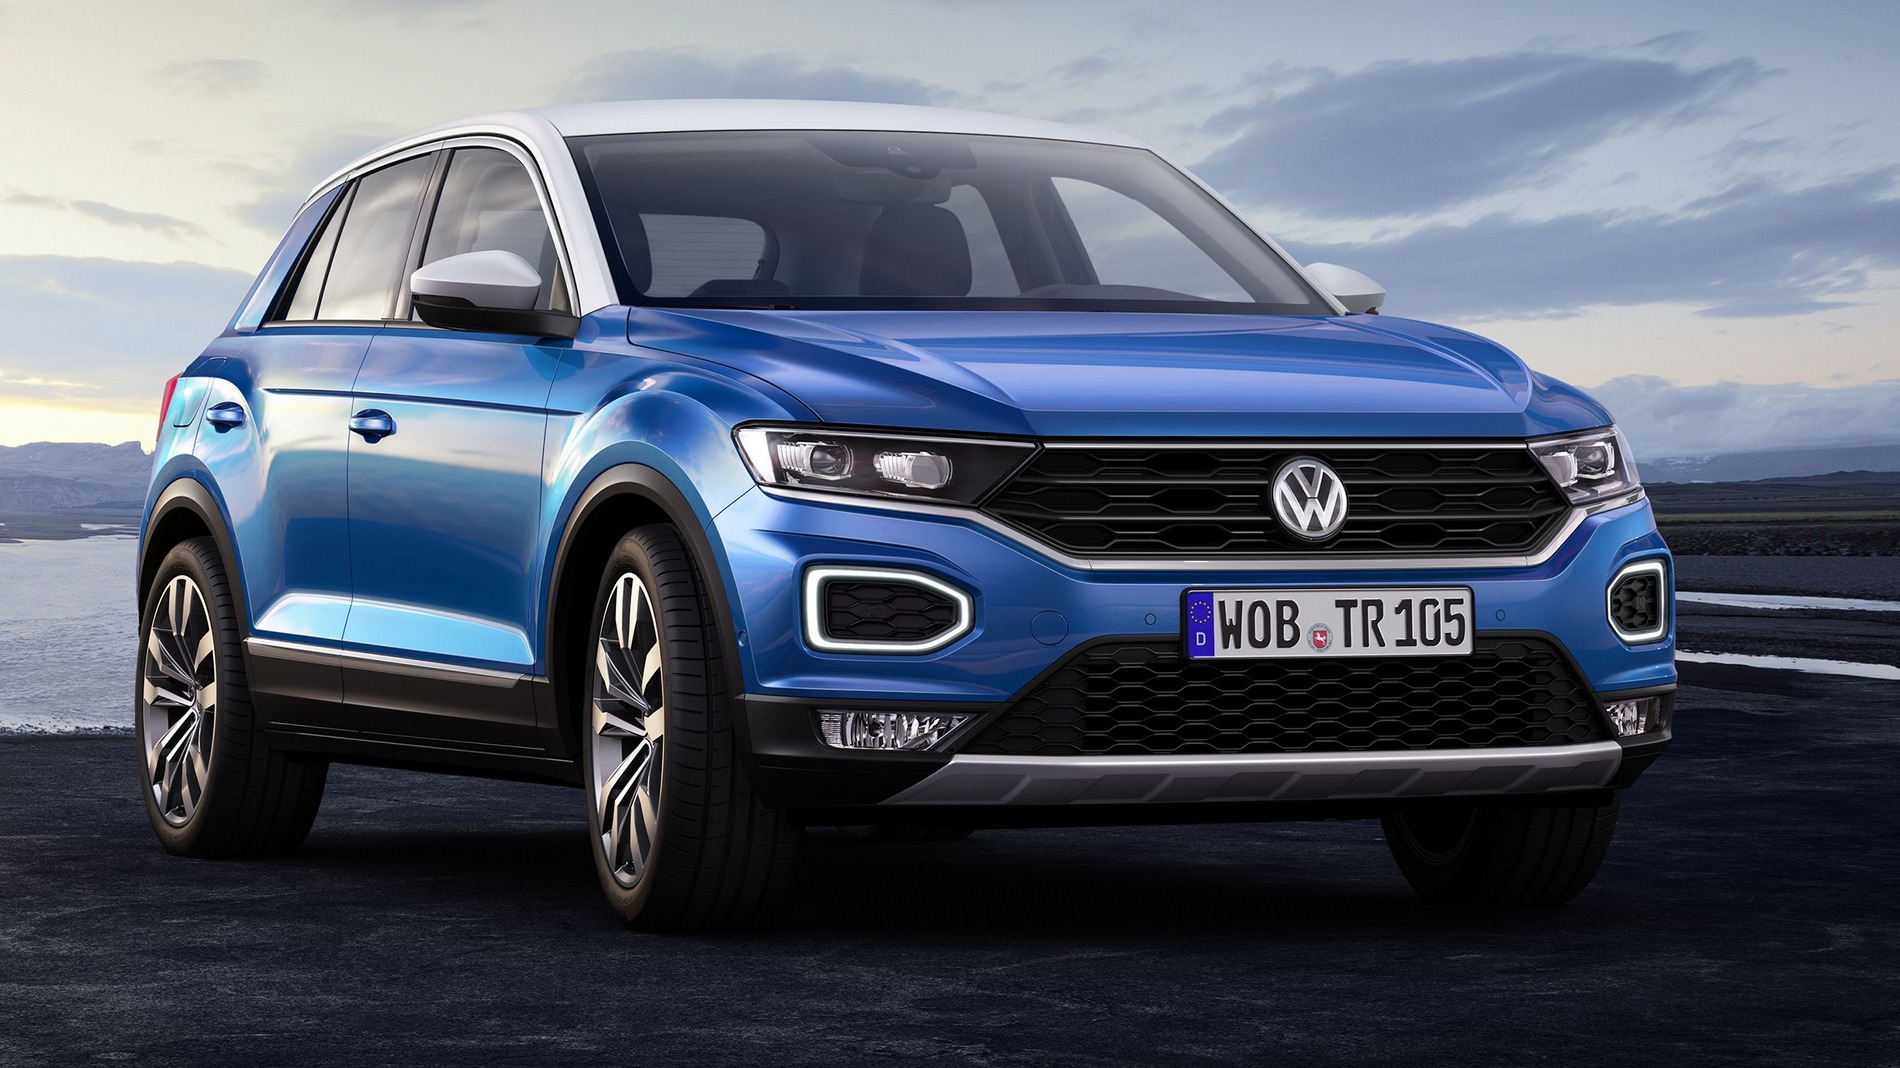 volkswagen t roc pou v techniku golfu je to u tvrt suv od vw. Black Bedroom Furniture Sets. Home Design Ideas